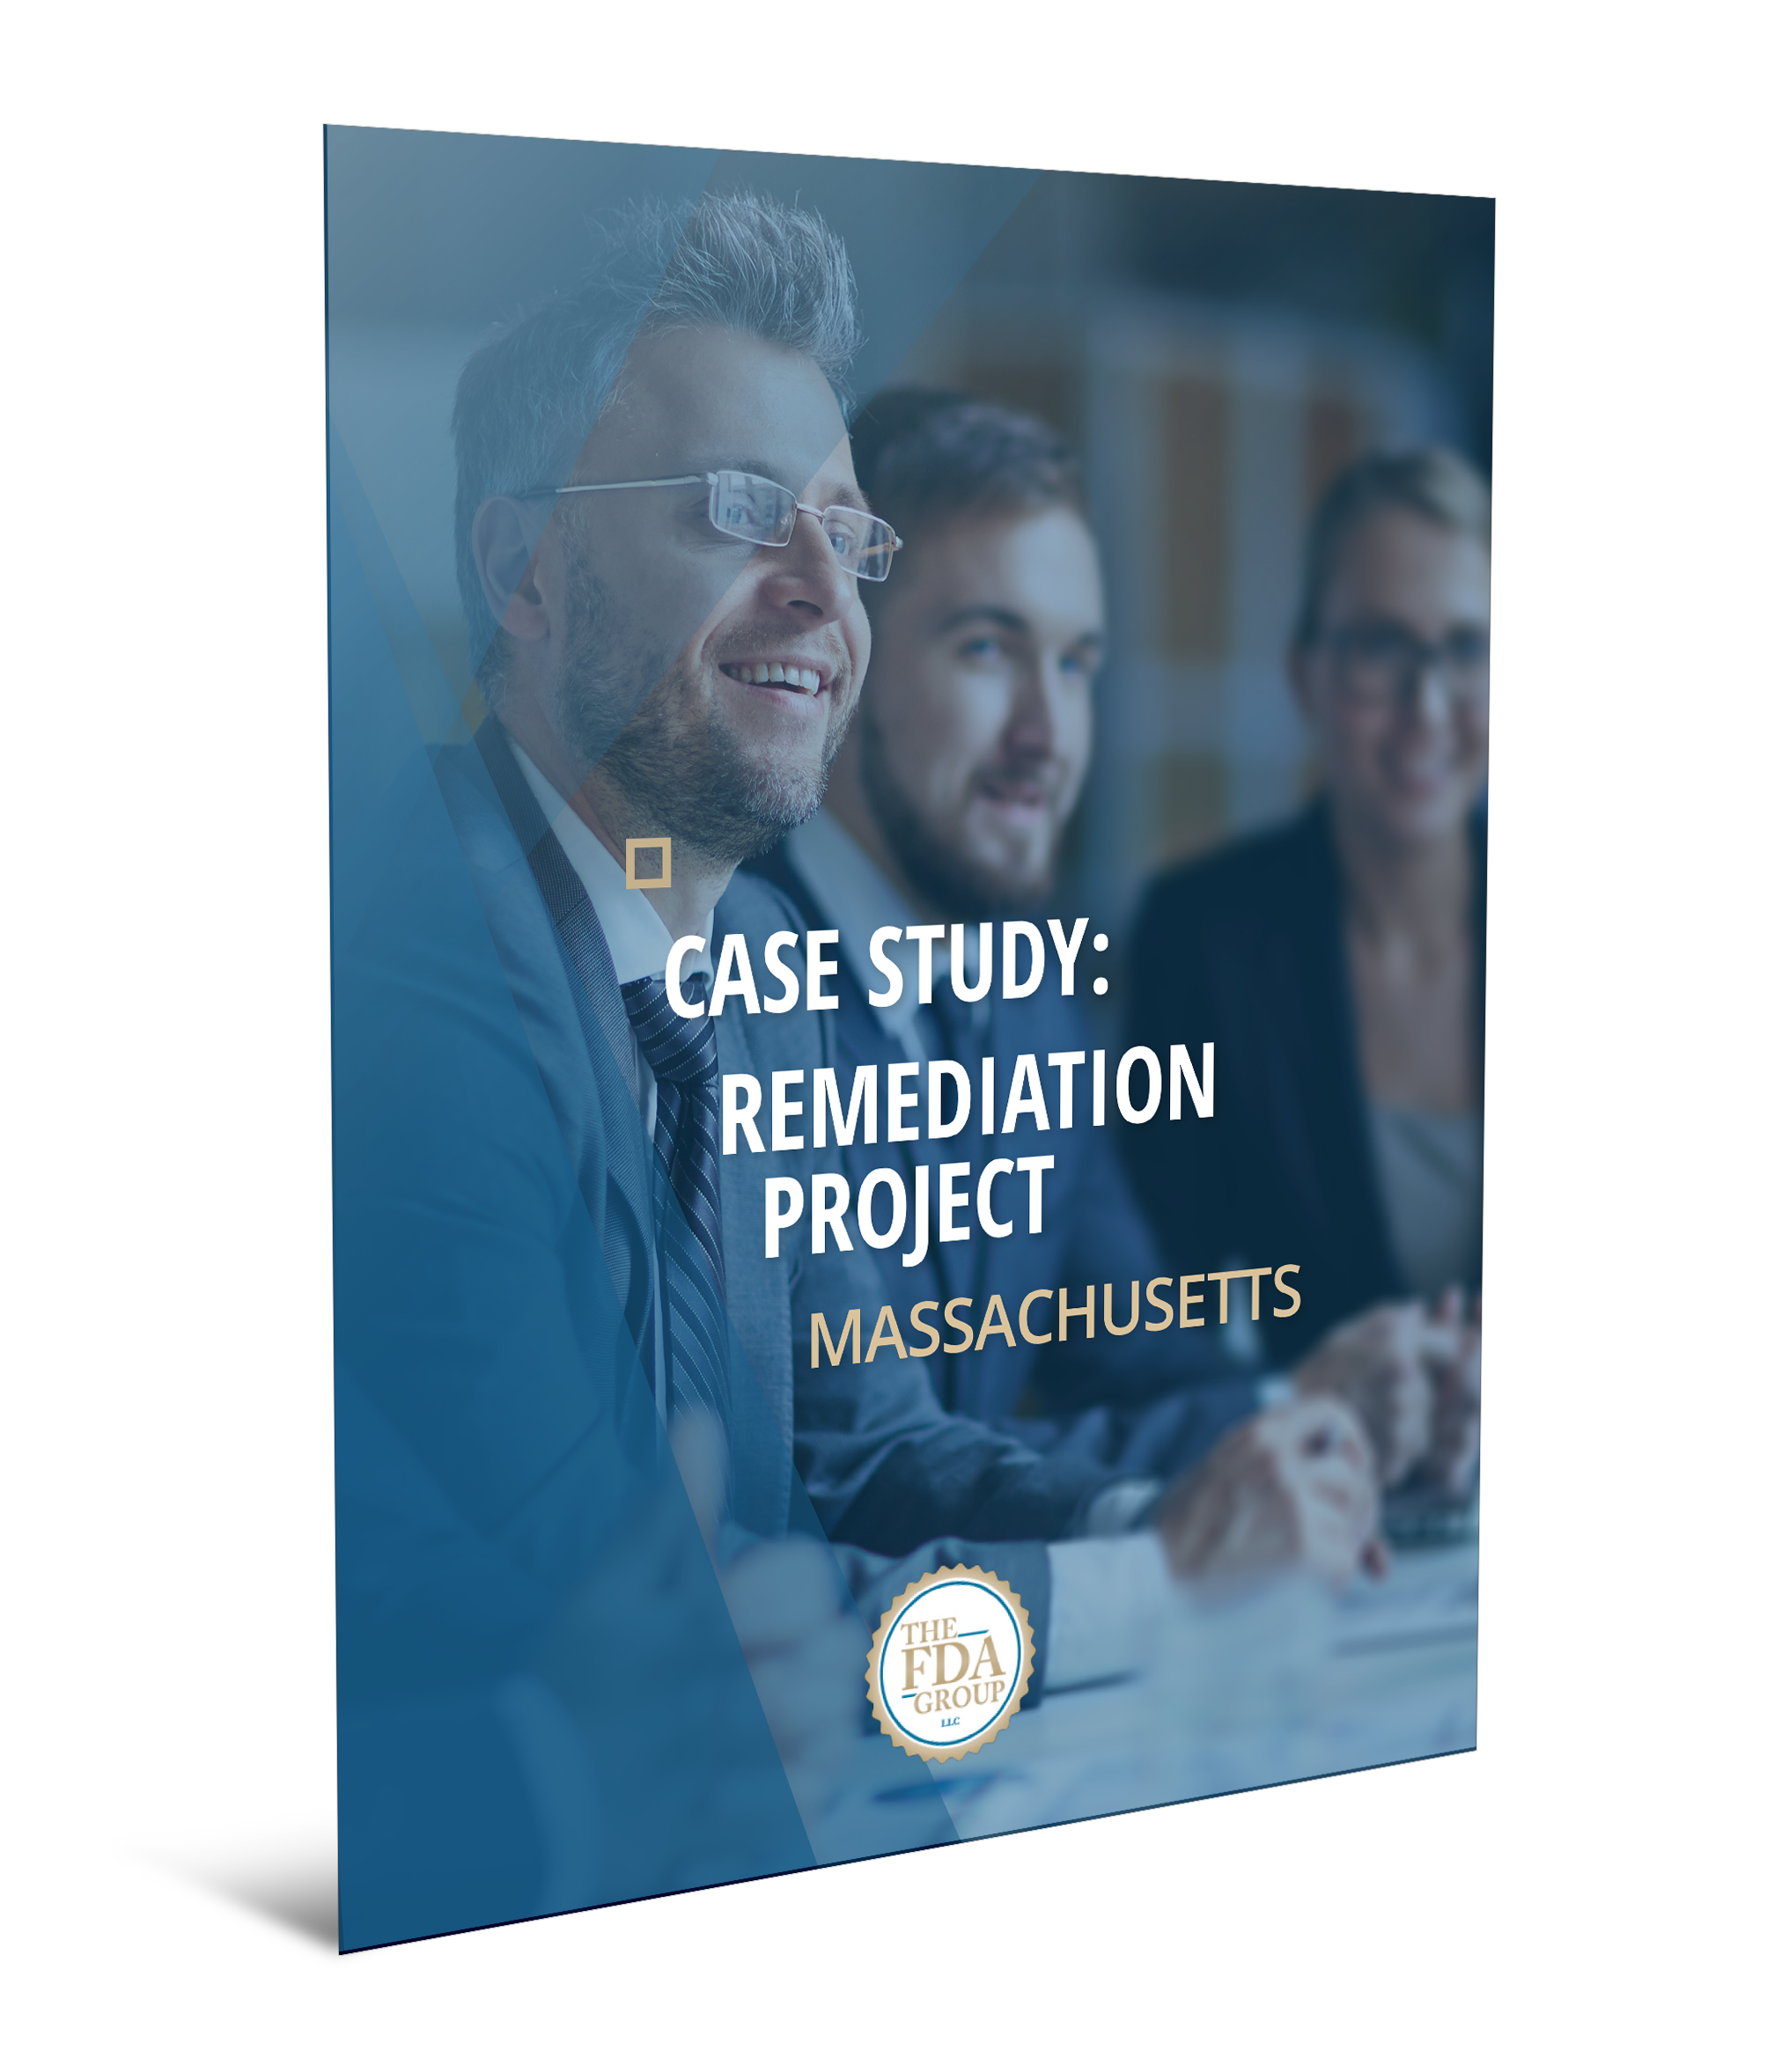 fda-casestudy-remediationproject-cover.png